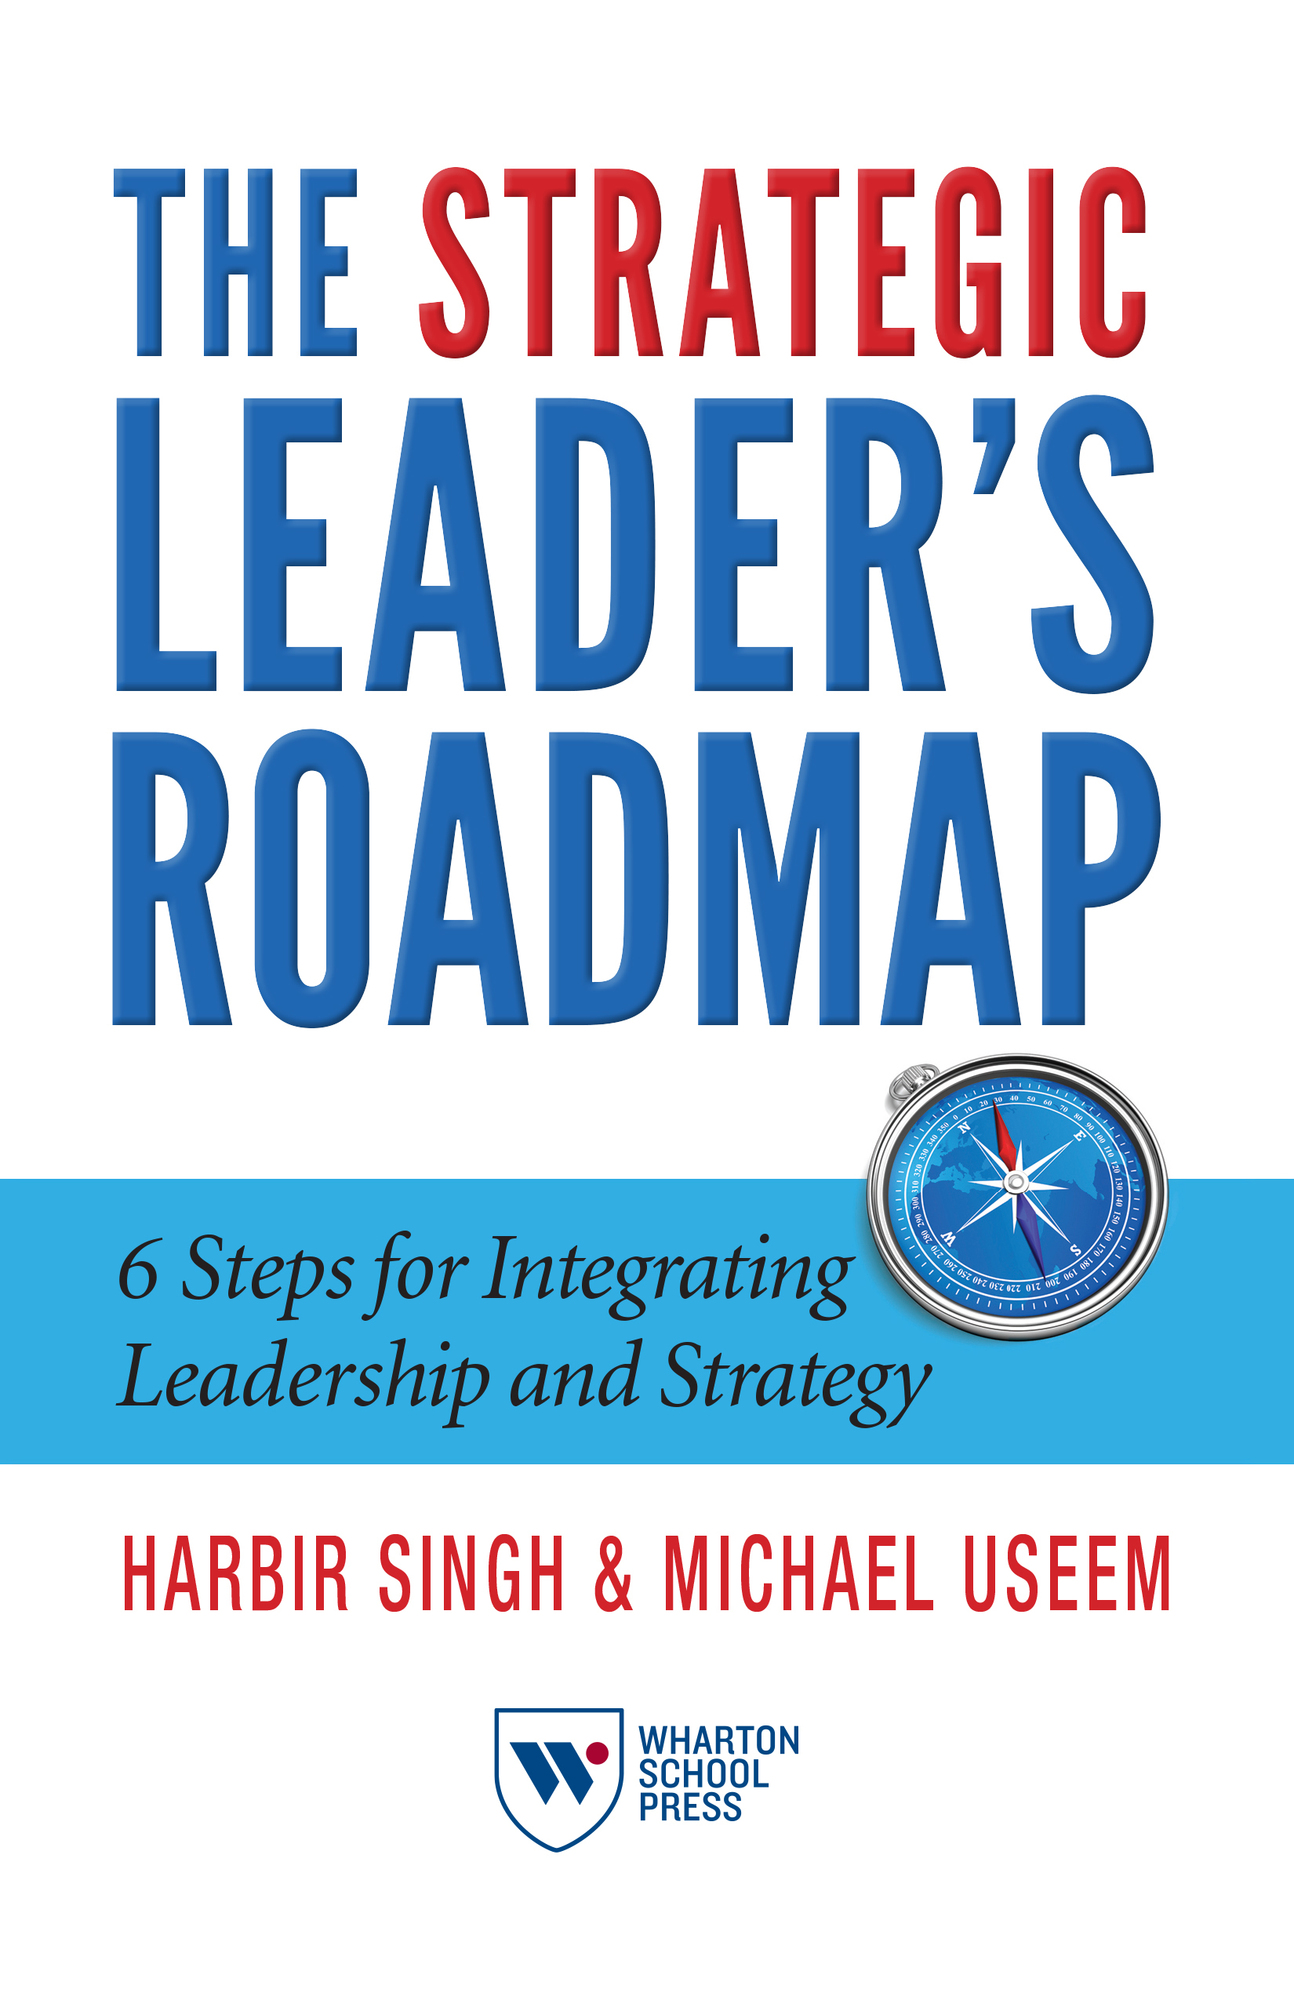 The Strategic Leader's Roadmap cover